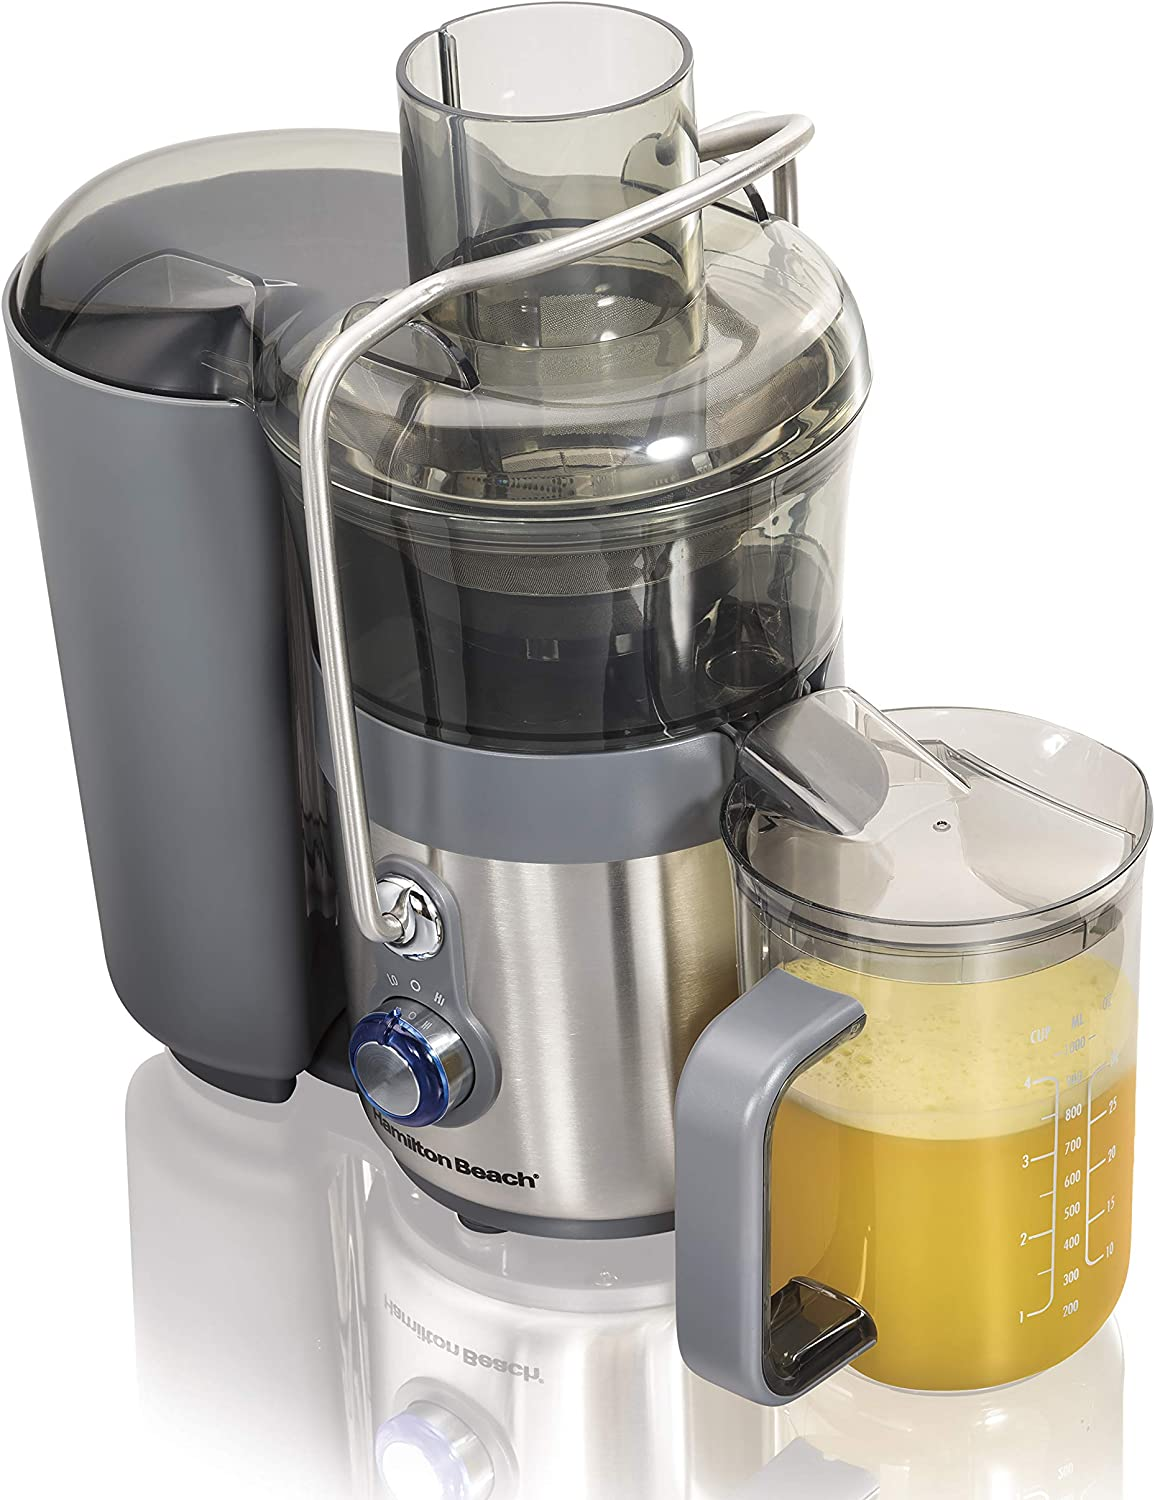 Best Hamilton Beach Juicers 2021 (Reviews) – Buying Guide 4